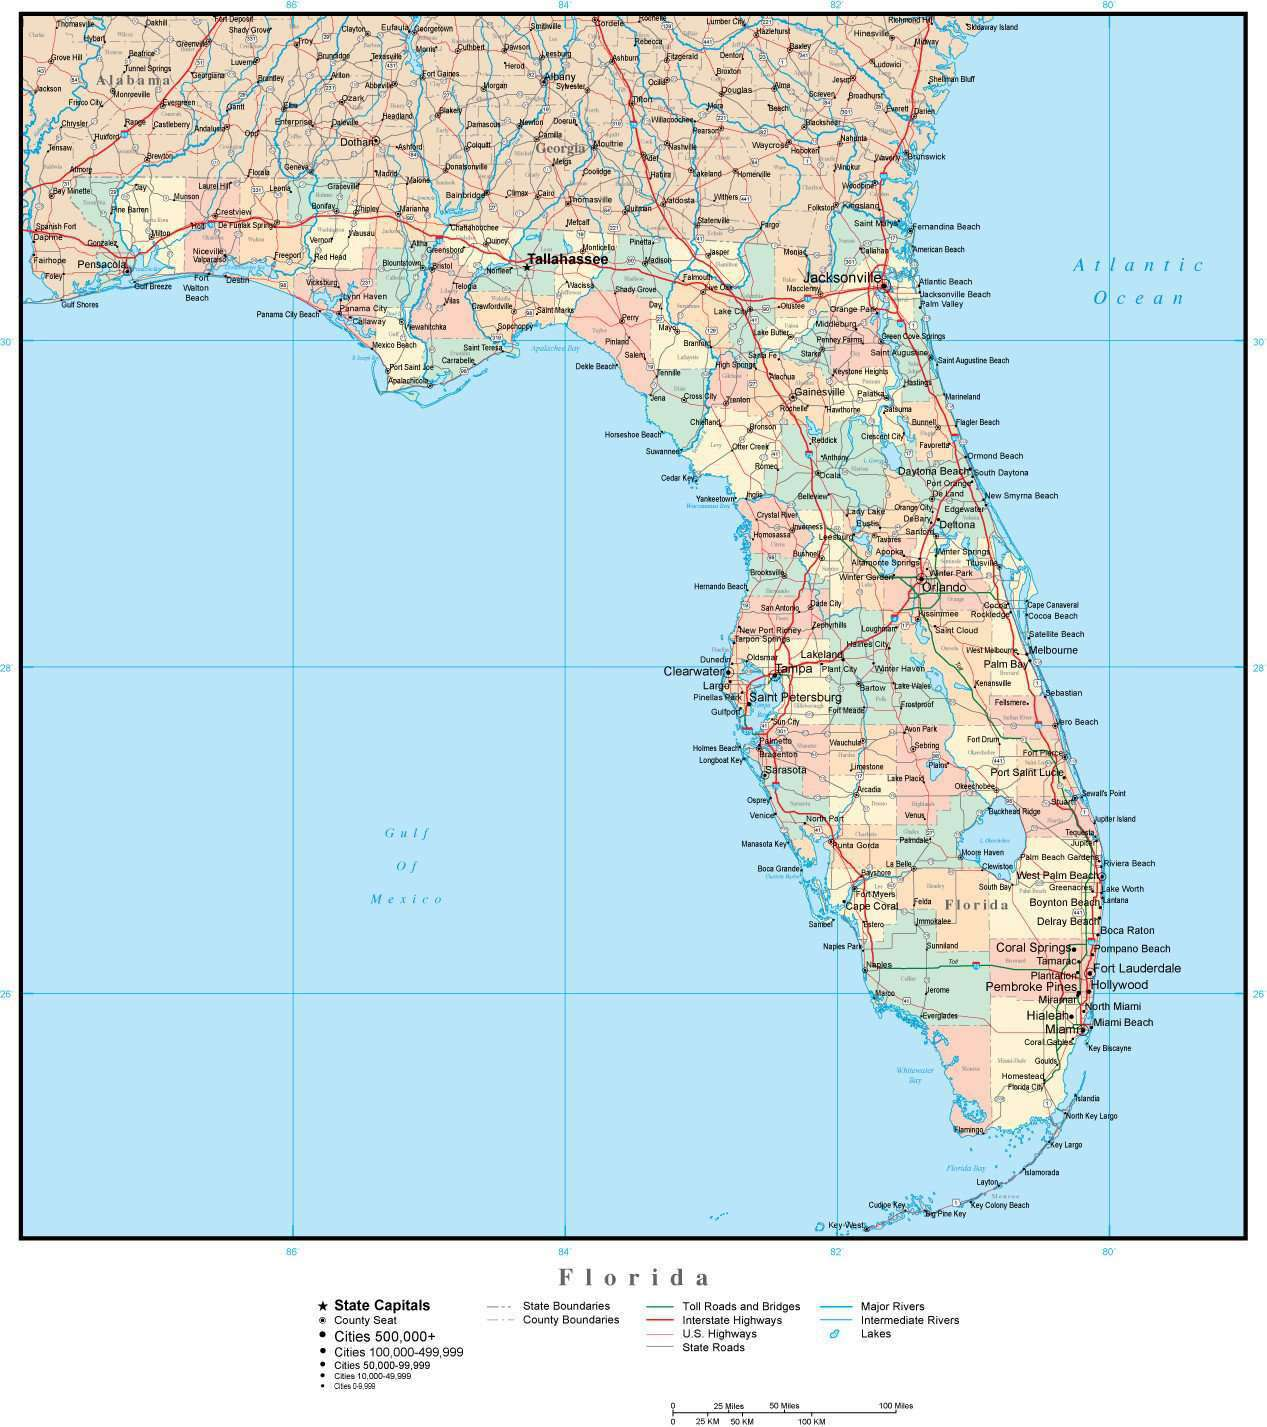 Florida County Map With Roads.Florida Adobe Illustrator Map With Counties Cities County Seats